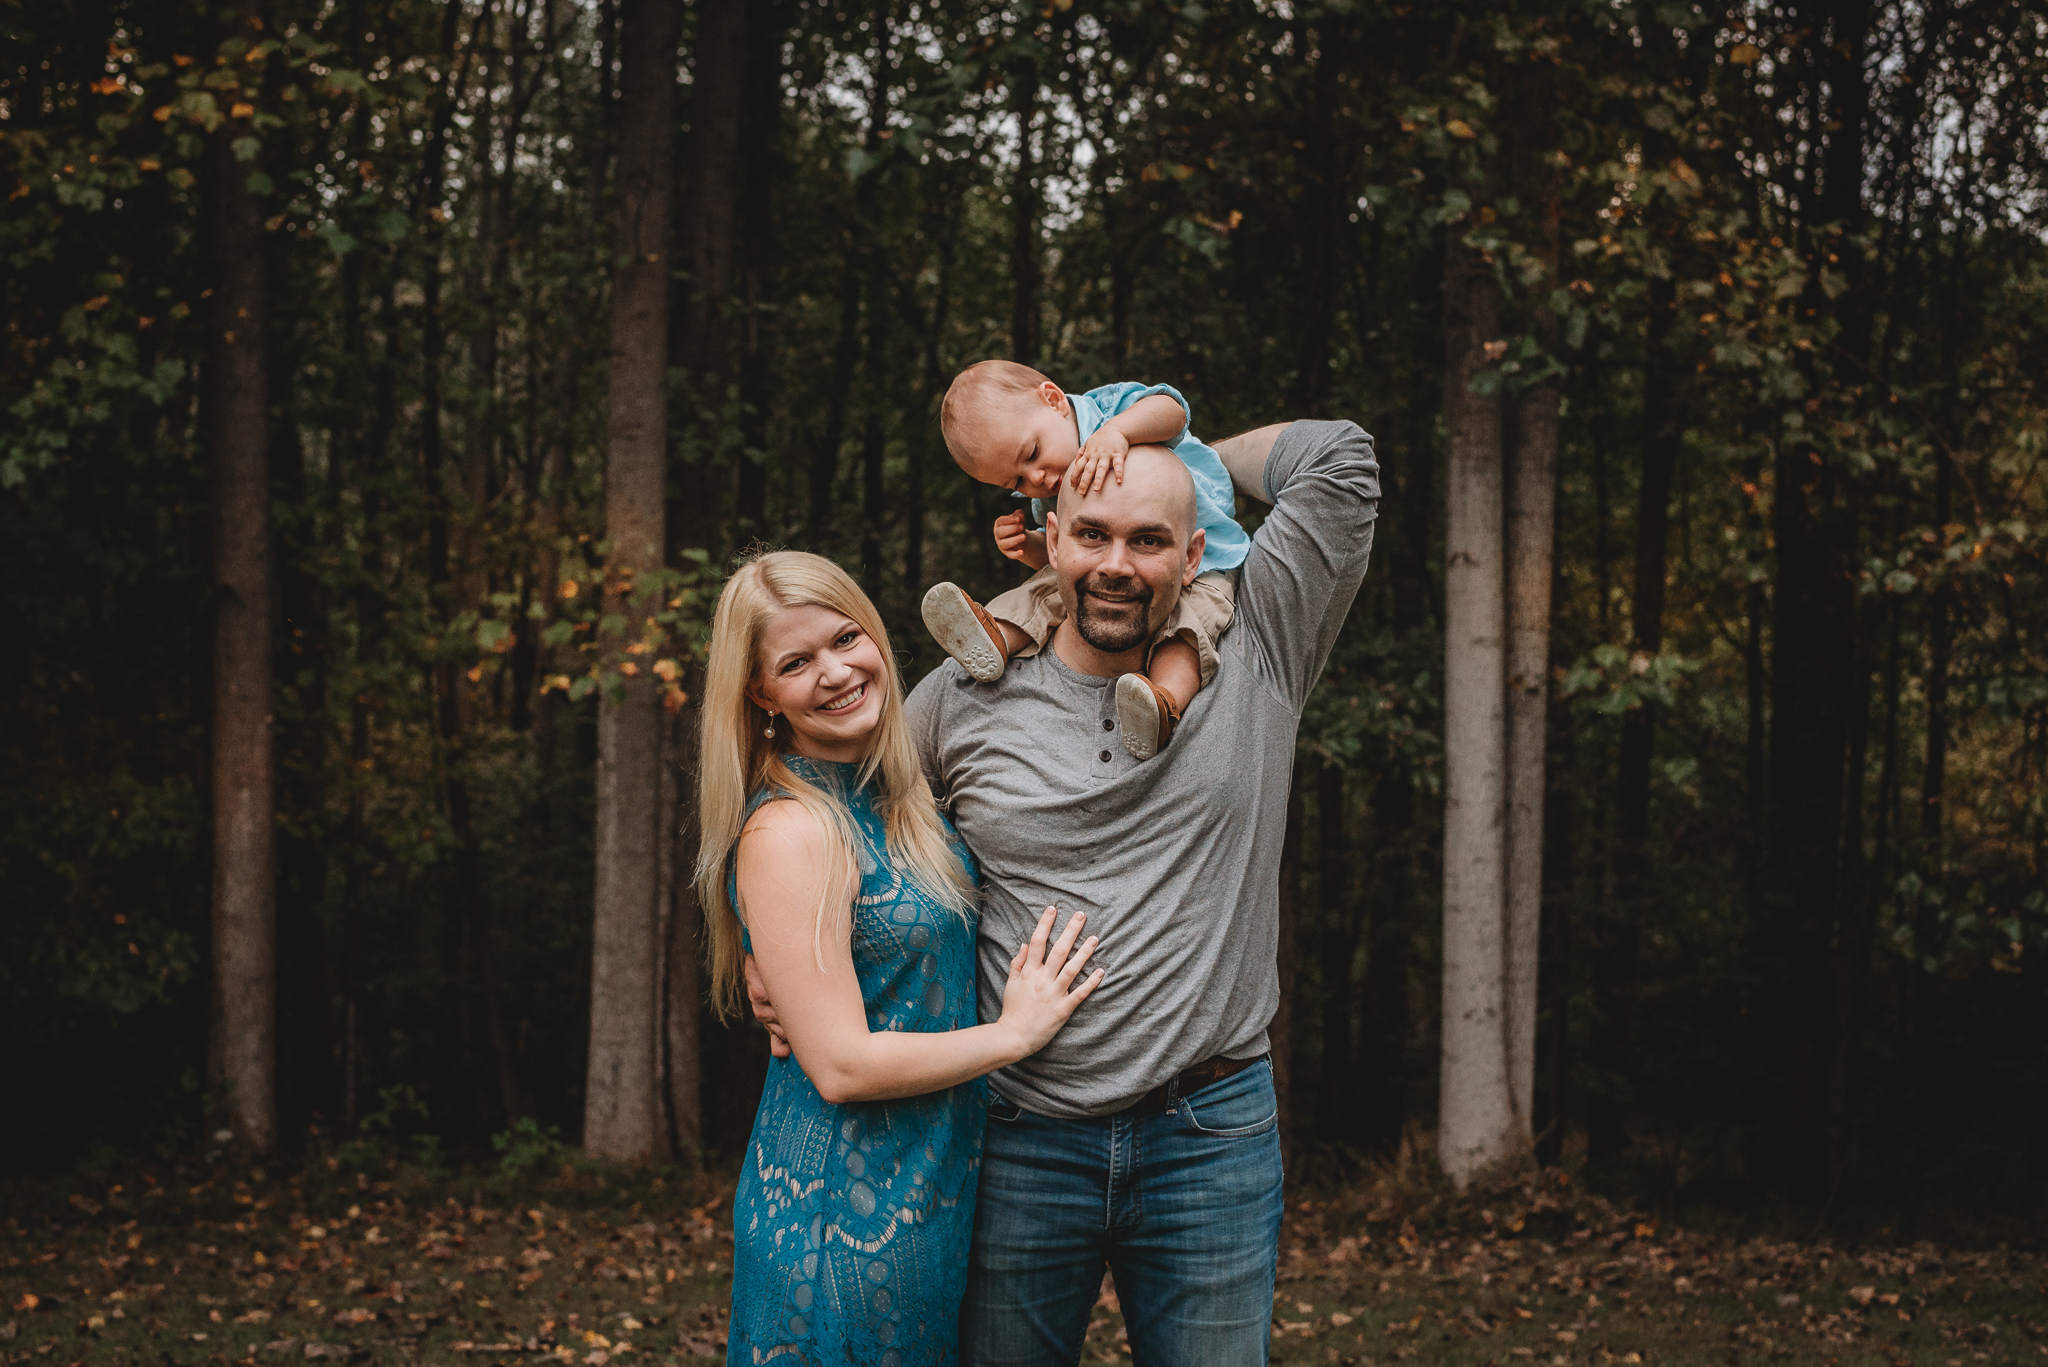 SarahWalsh.Family.Oct2018.web4.jpg